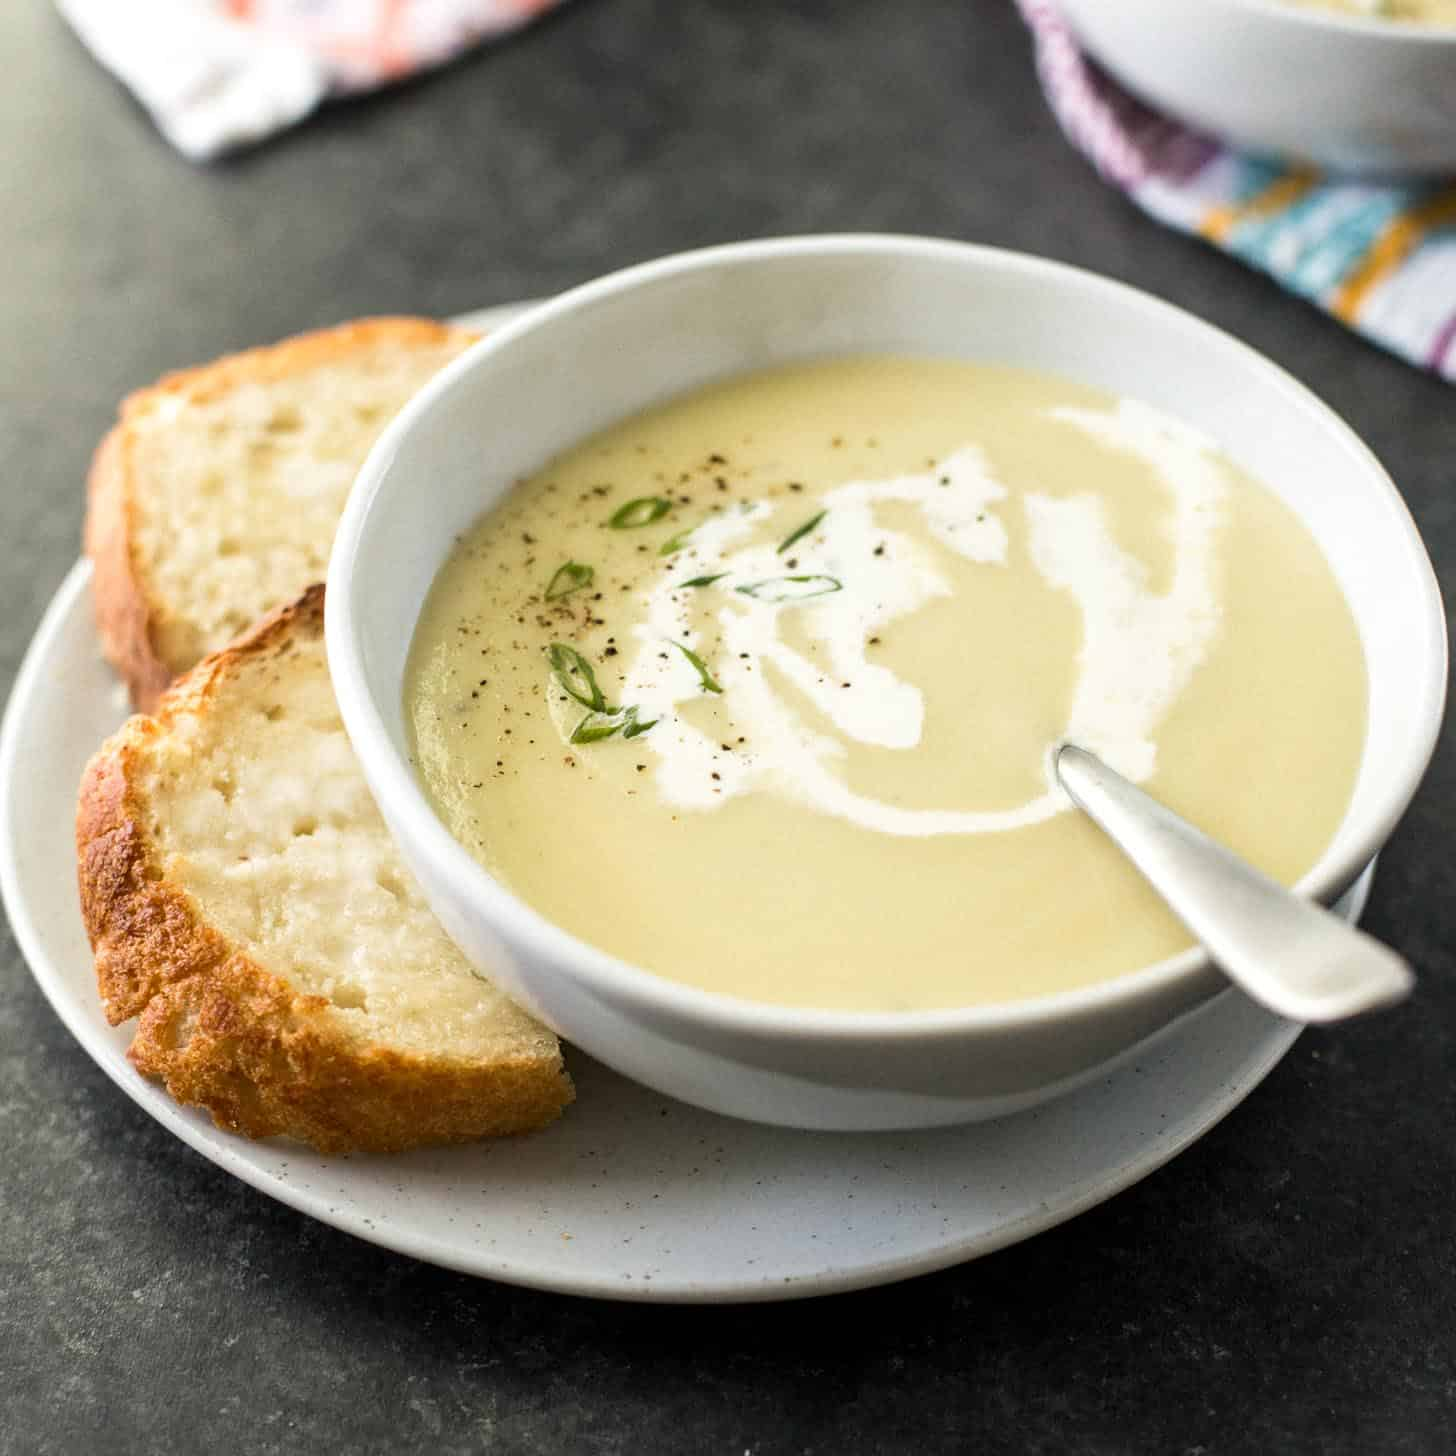 Instant Pot potato leek soup in a white bowl next to sliced crusty bread